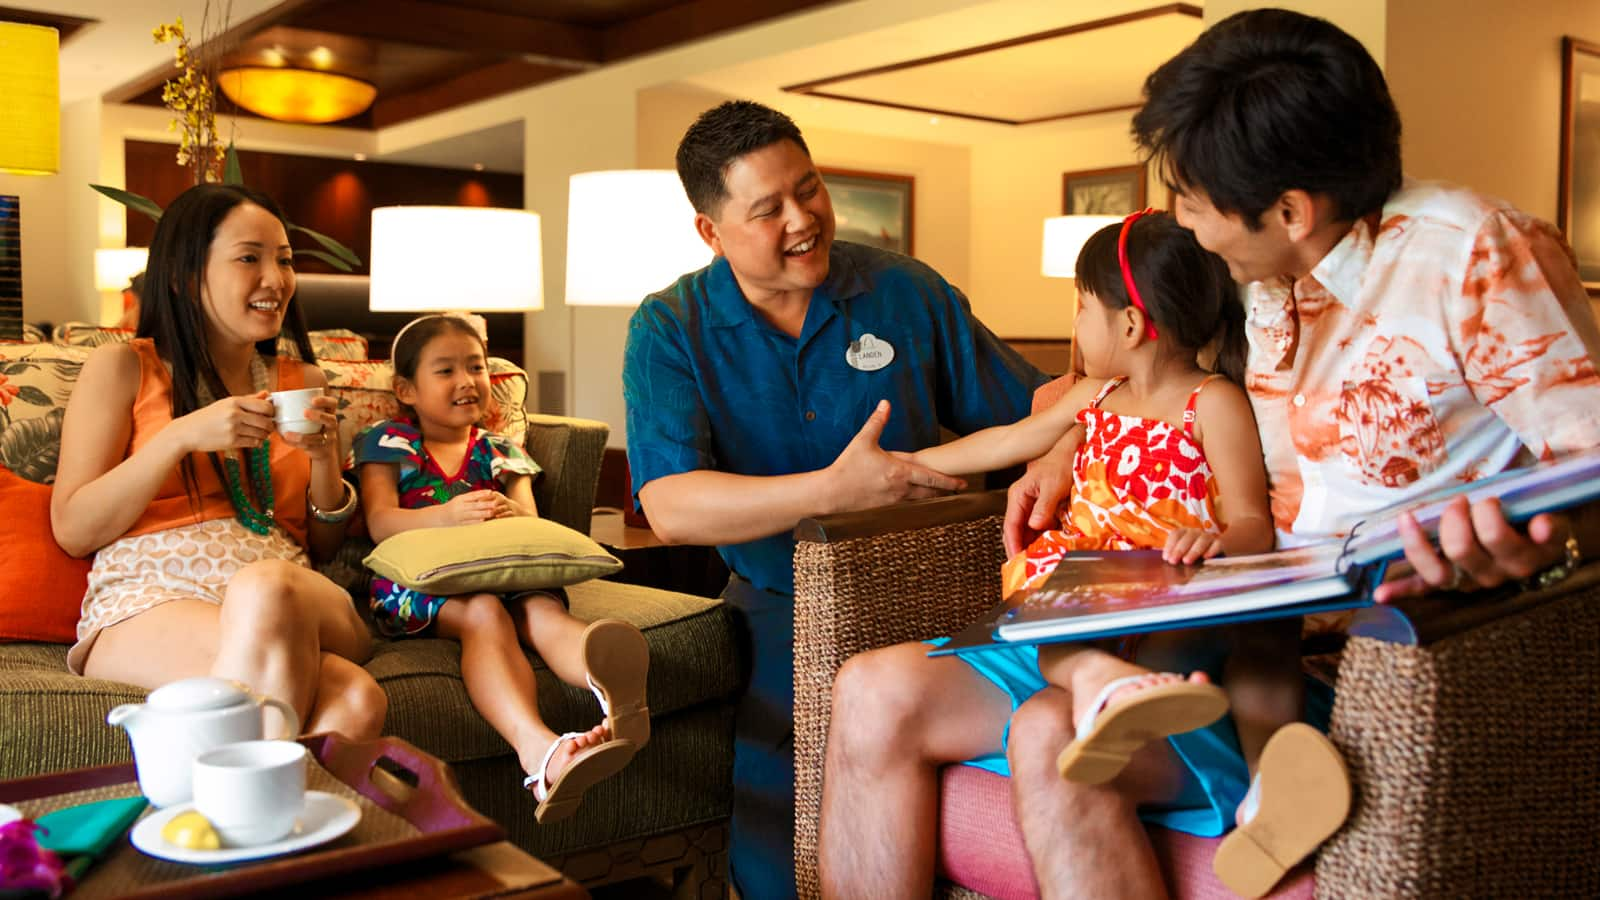 A Disney Cast Member greets a family of 4 seated in a small lounge area